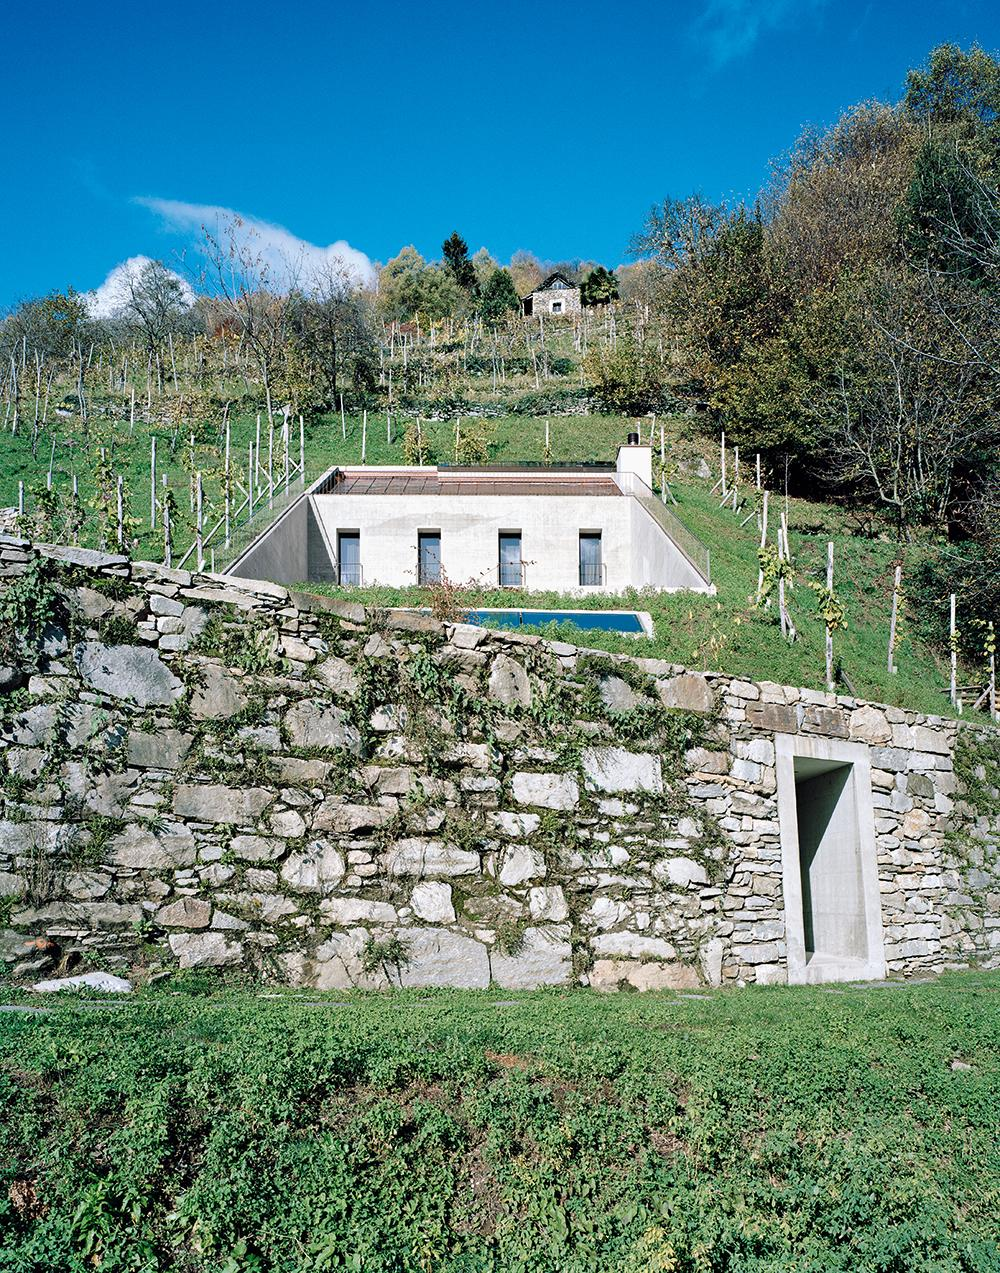 Exterior of Casa Bula, Ticino, Switzerland, accessed via a stone wall